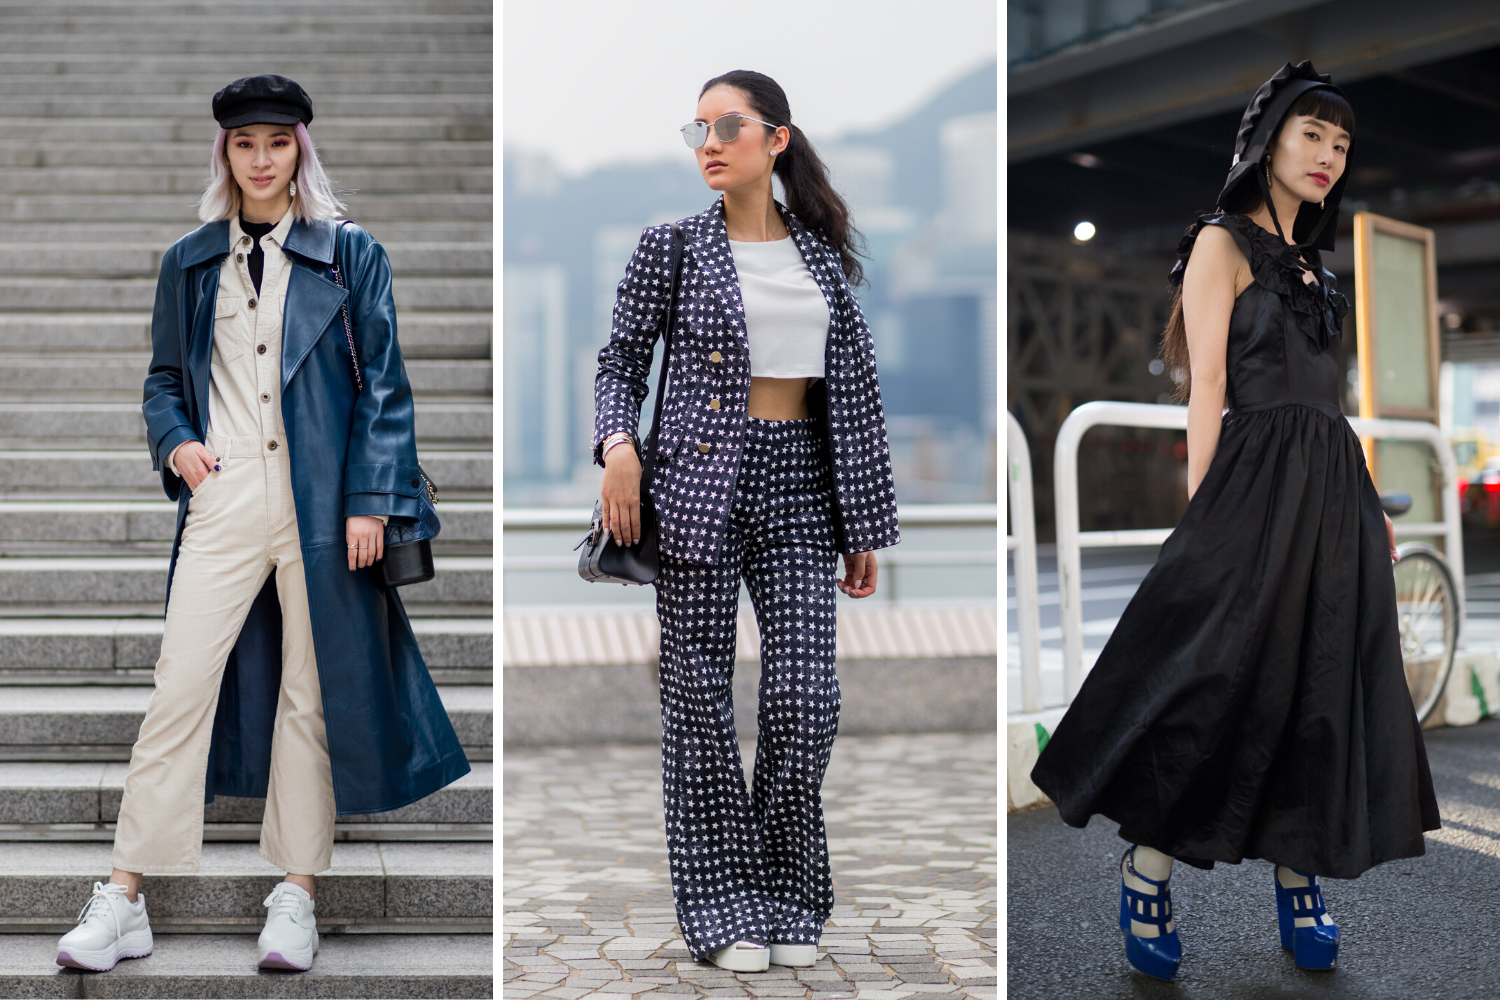 Flashback: 10 Iconic Women's Fashion Trends in Hong Kong That Defined the Decade